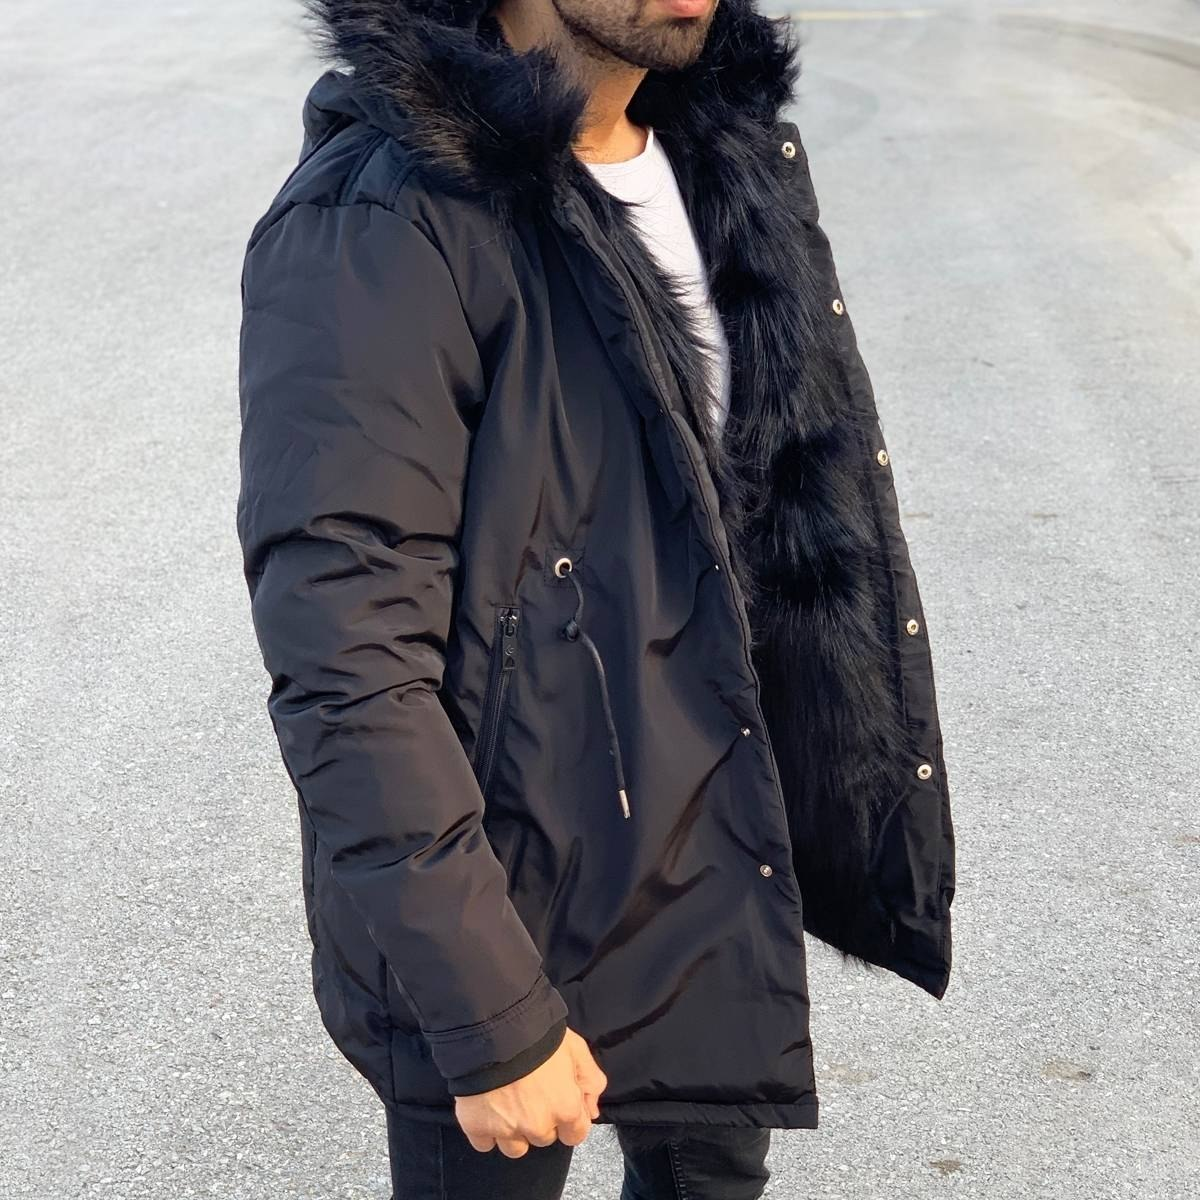 Winter Furry Puffy Coat Black Mv Premium Brand - 7